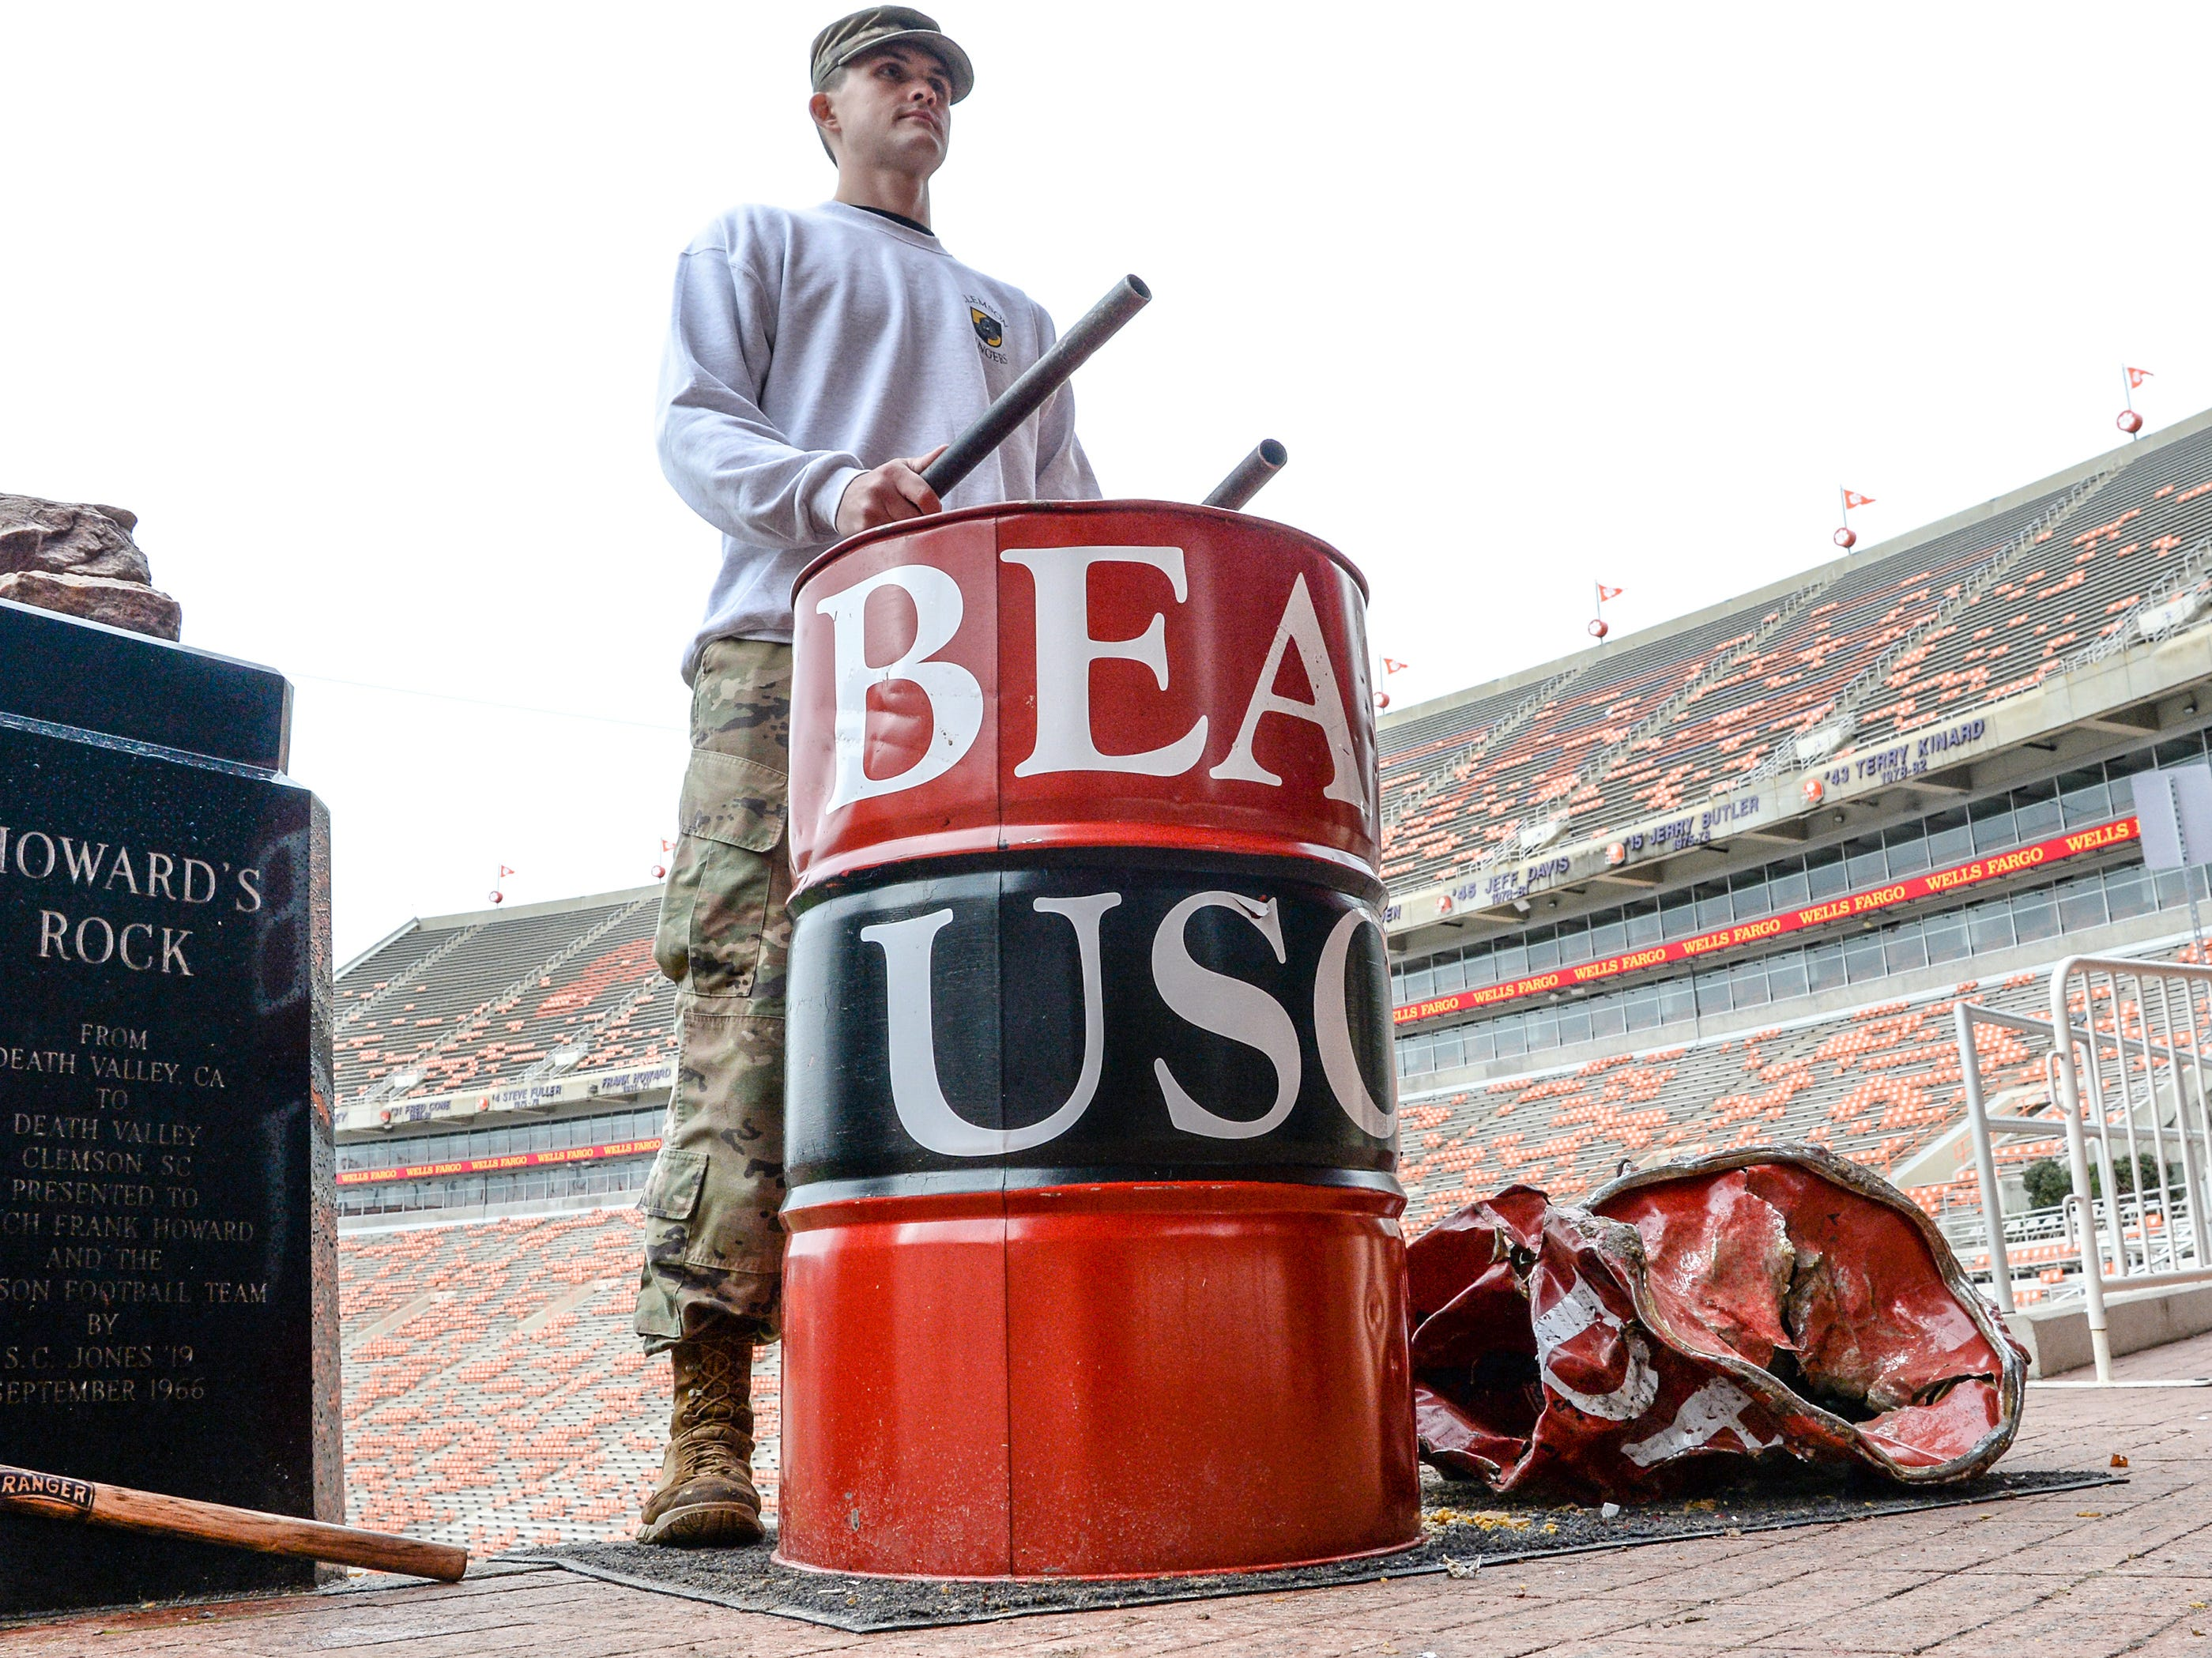 Thomas Mills, a Clemson University junior in Army ROTC and the Clemson Ranger Club, is one of 17 on two-hour shifts banging a steel drum to the ground hours before kickoff in Memorial Stadium, before the South Carolina at Clemson football game in Clemson on Saturday, November 24, 2018.